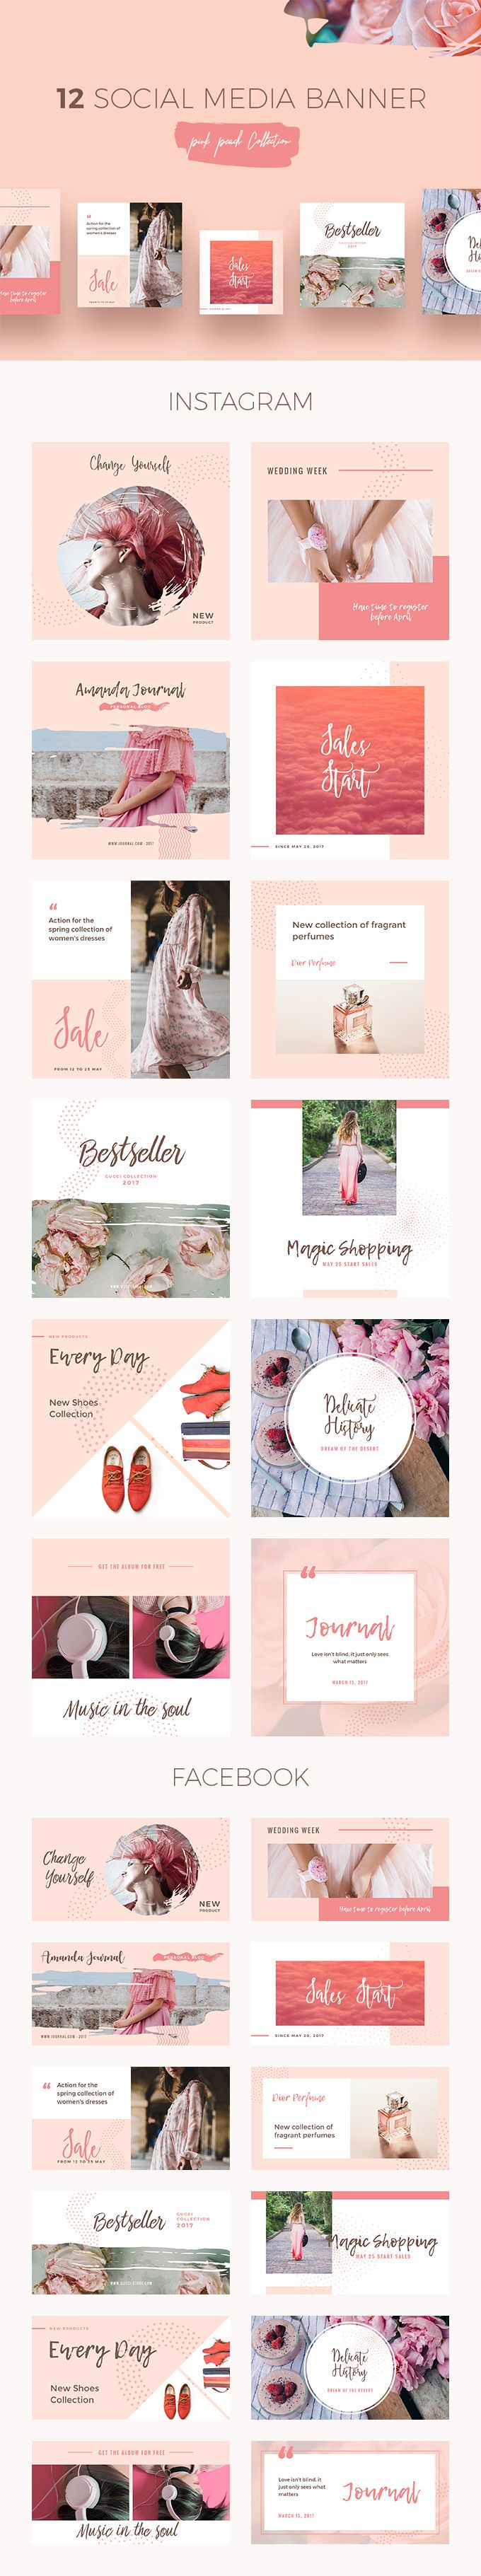 Peach Social Media Templates - download freebie by PixelBuddha #ad